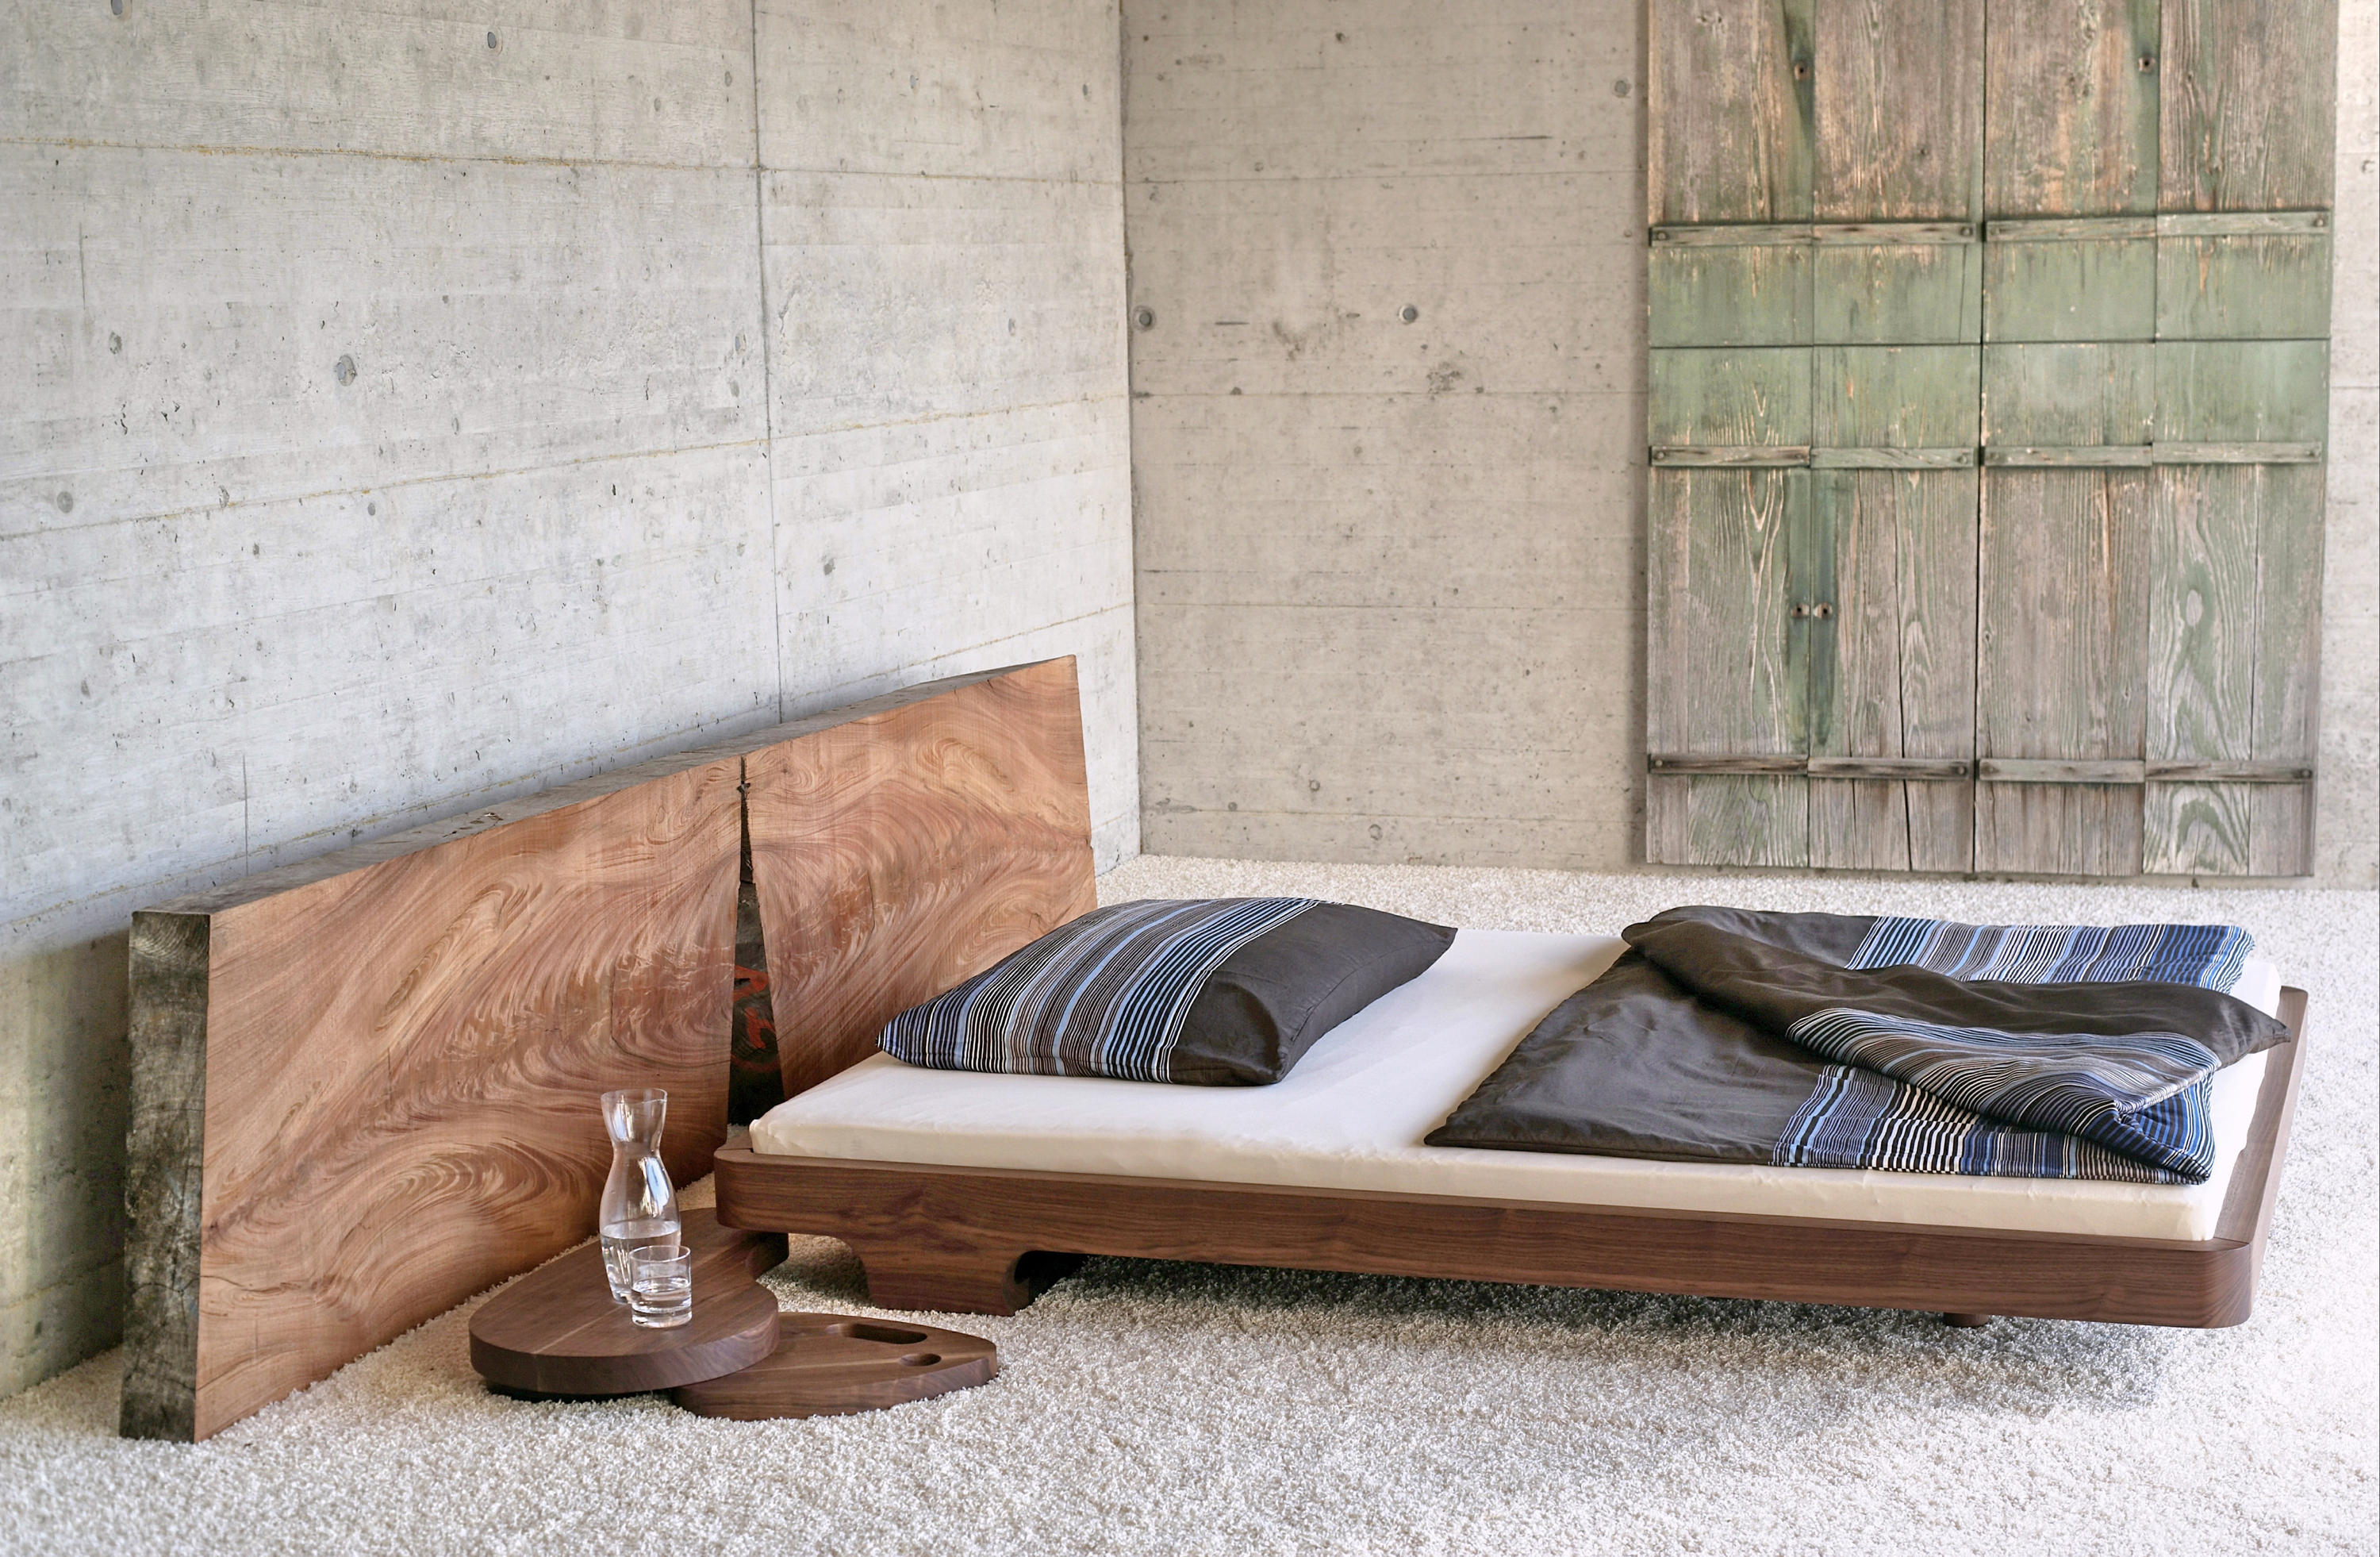 IGN. DREAM. BED. - Letti matrimoniali Ign. Design ...